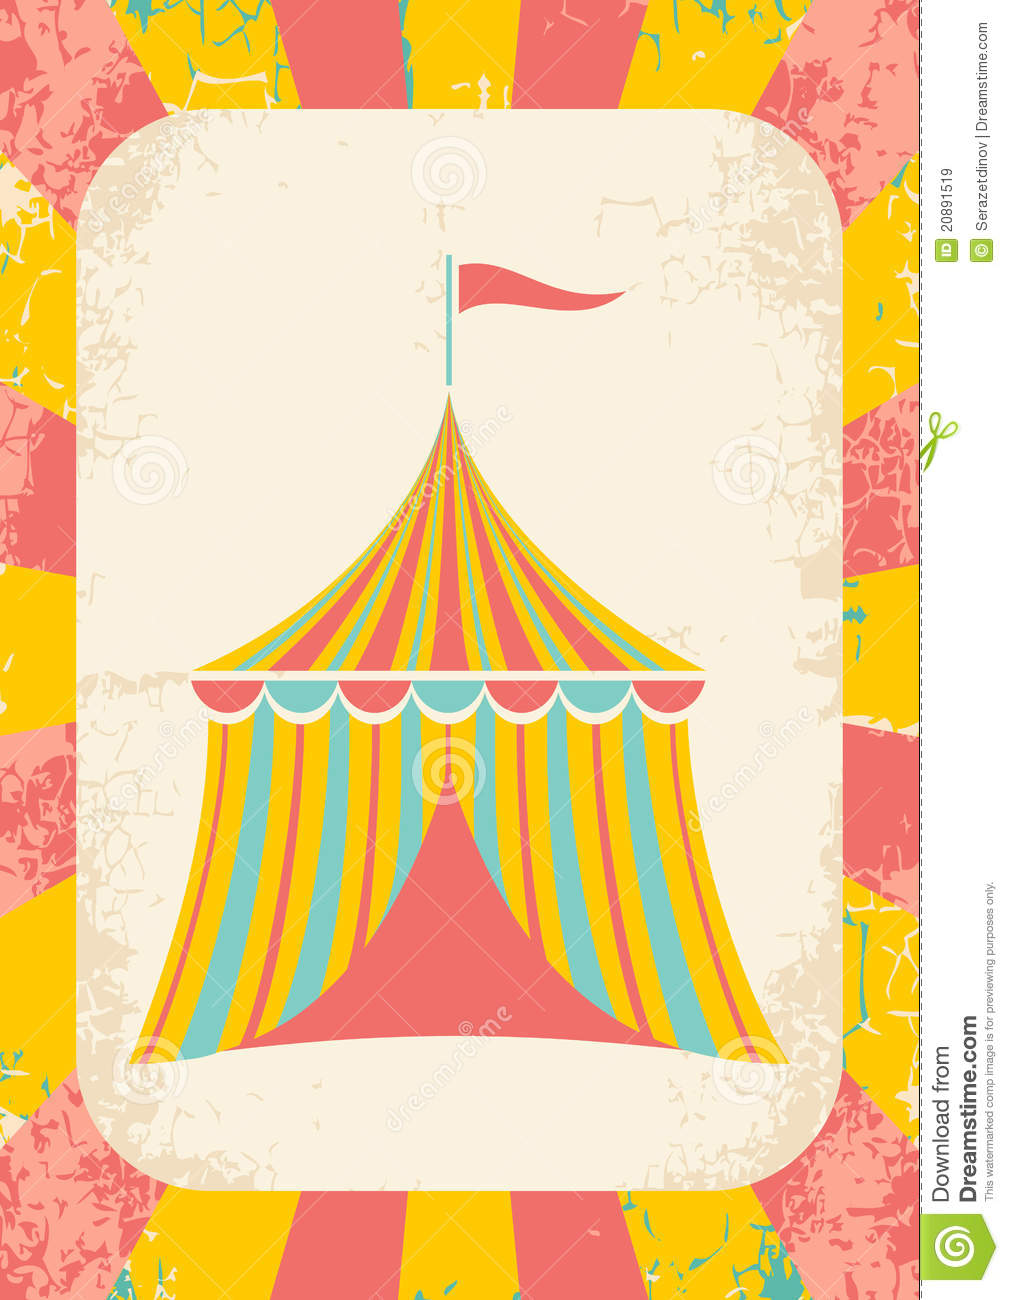 Circus tent  sc 1 st  Dreamstime.com & Circus tent stock vector. Image of pattern dirty arena - 20891519